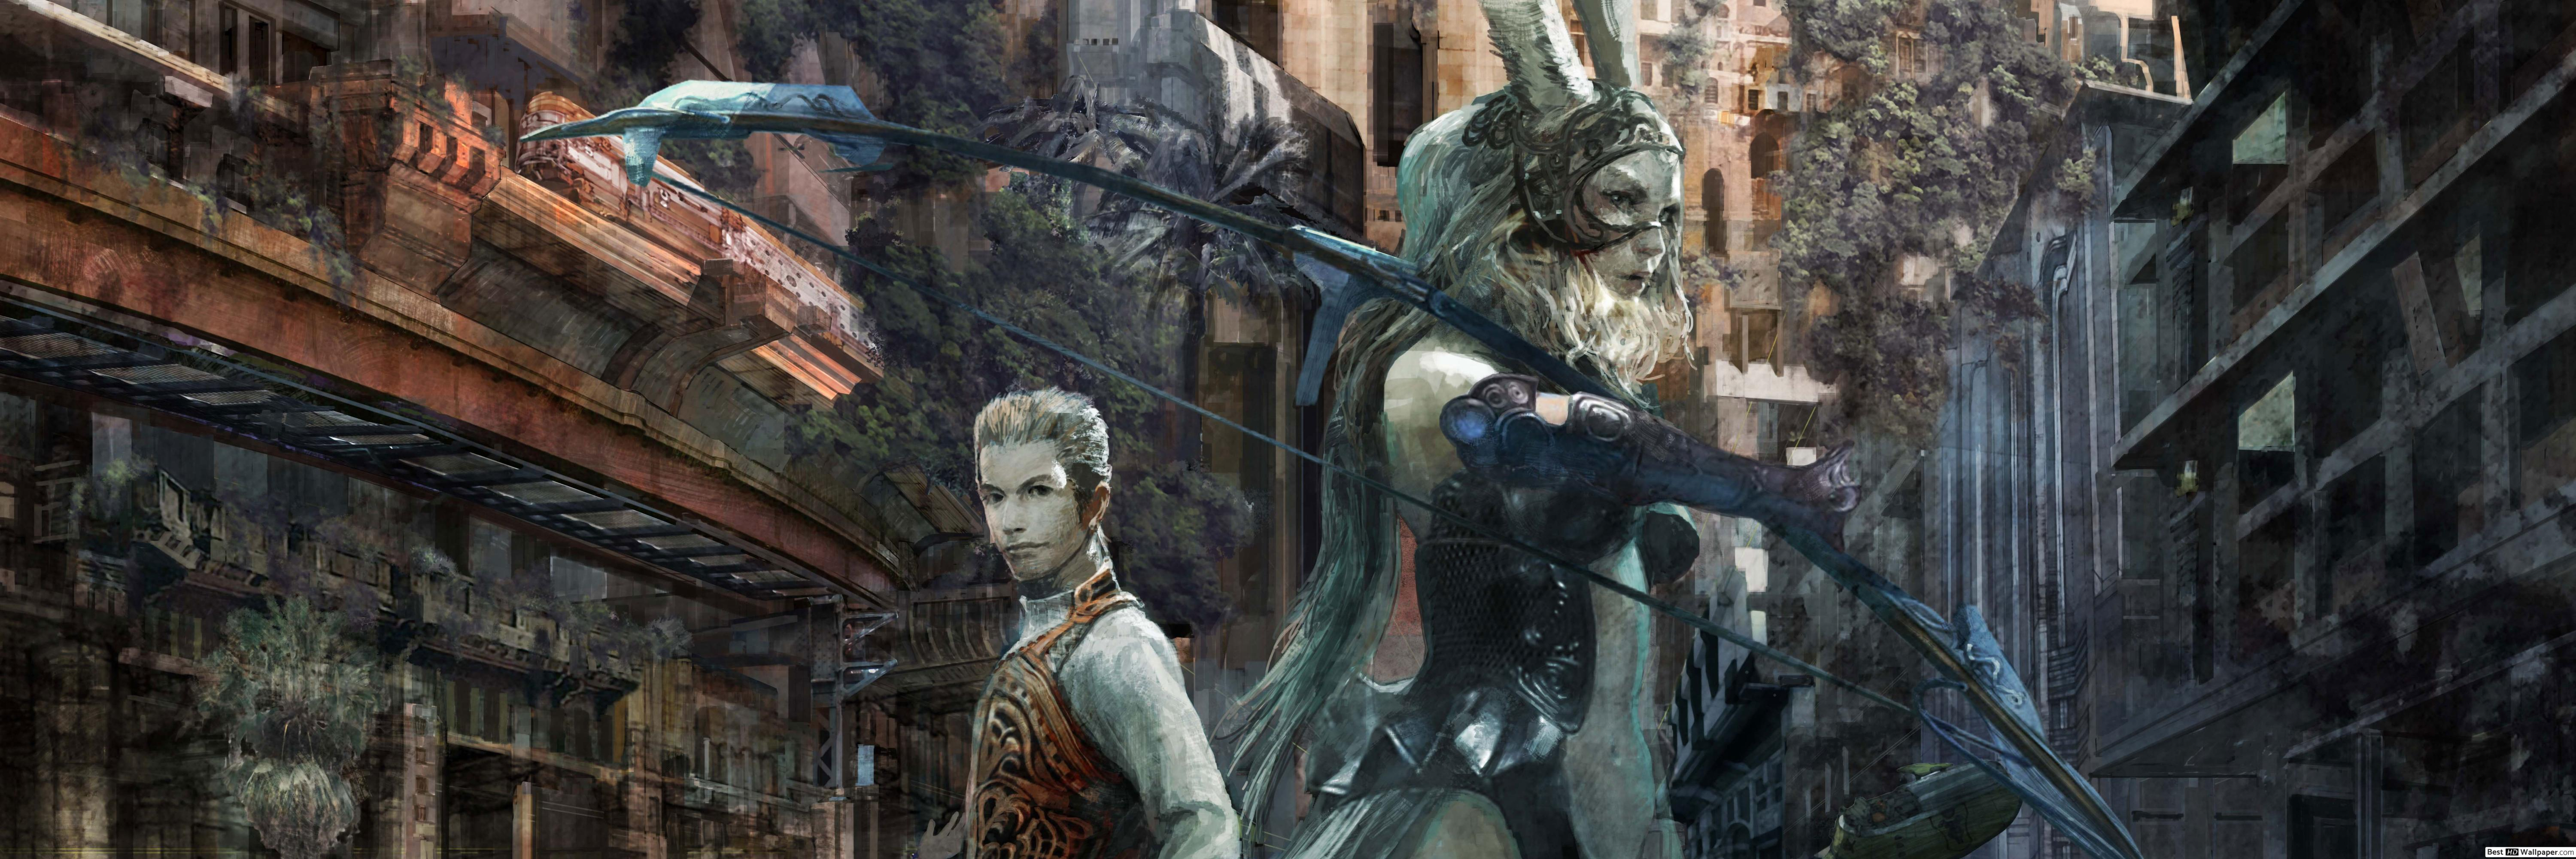 Final Fantasy Xii The Zodiac Age Wallpapers Posted By Ryan Tremblay